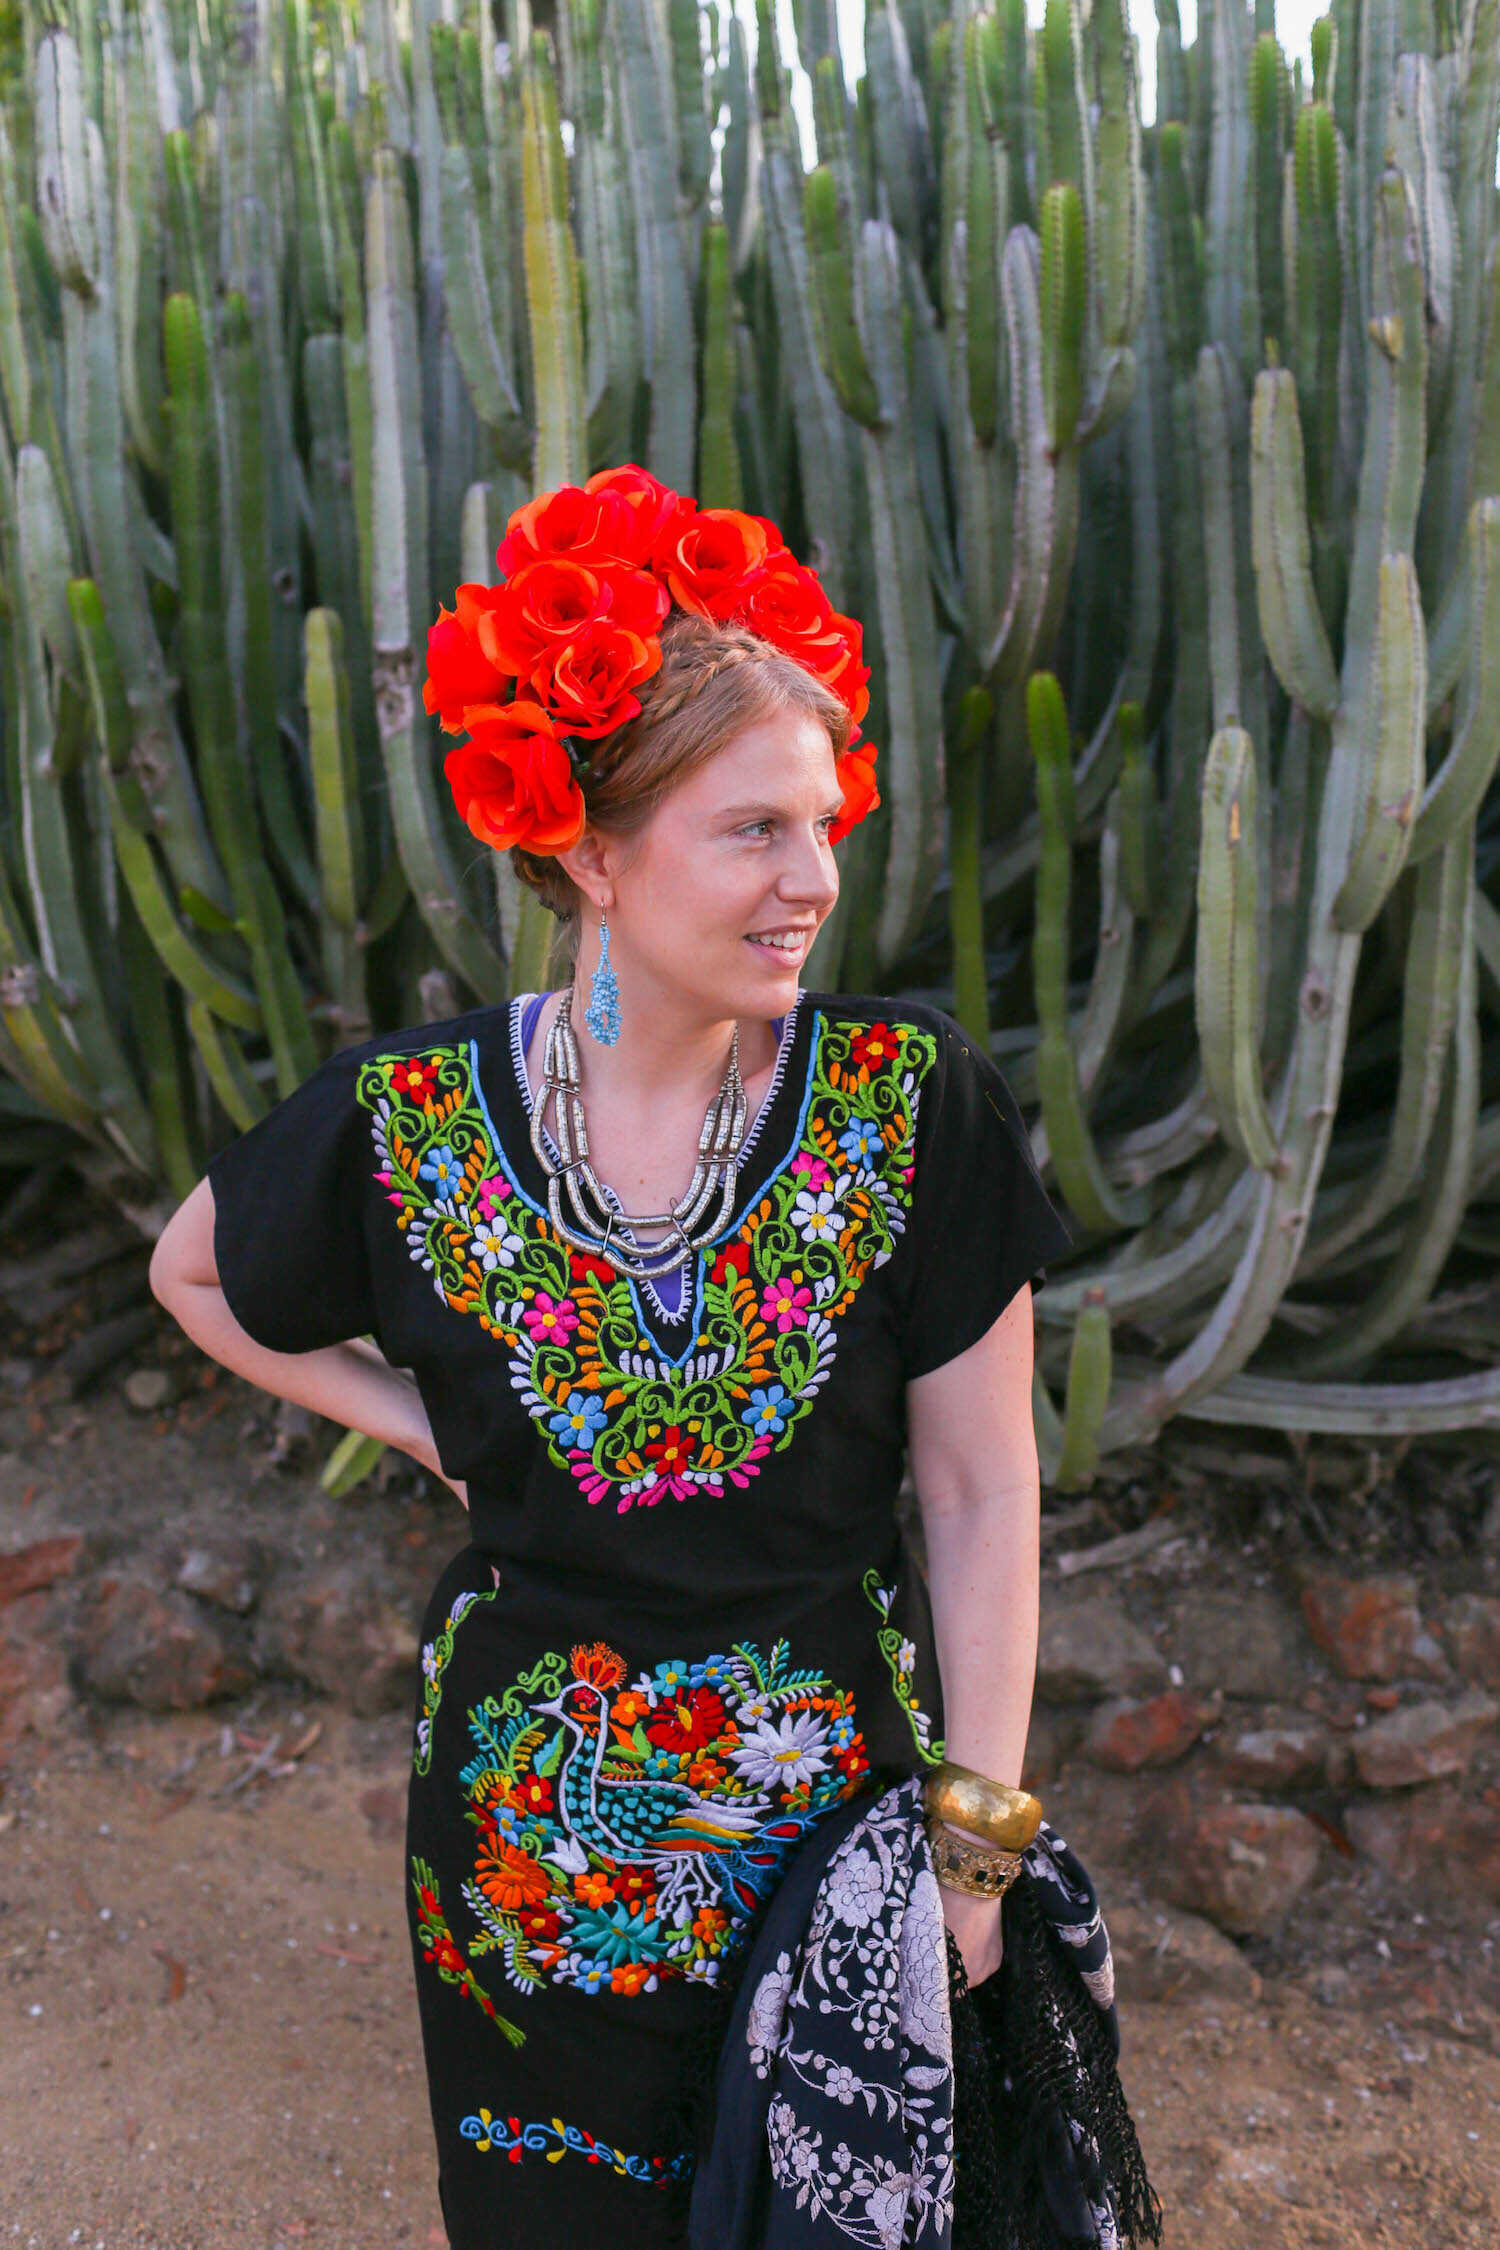 Mexican Floral Embroidered Dress Mexican Artisanal Dress Frida Kahlo Bridesmaid Dress. Mexican Traditional Dress Lace Sleeve Dress